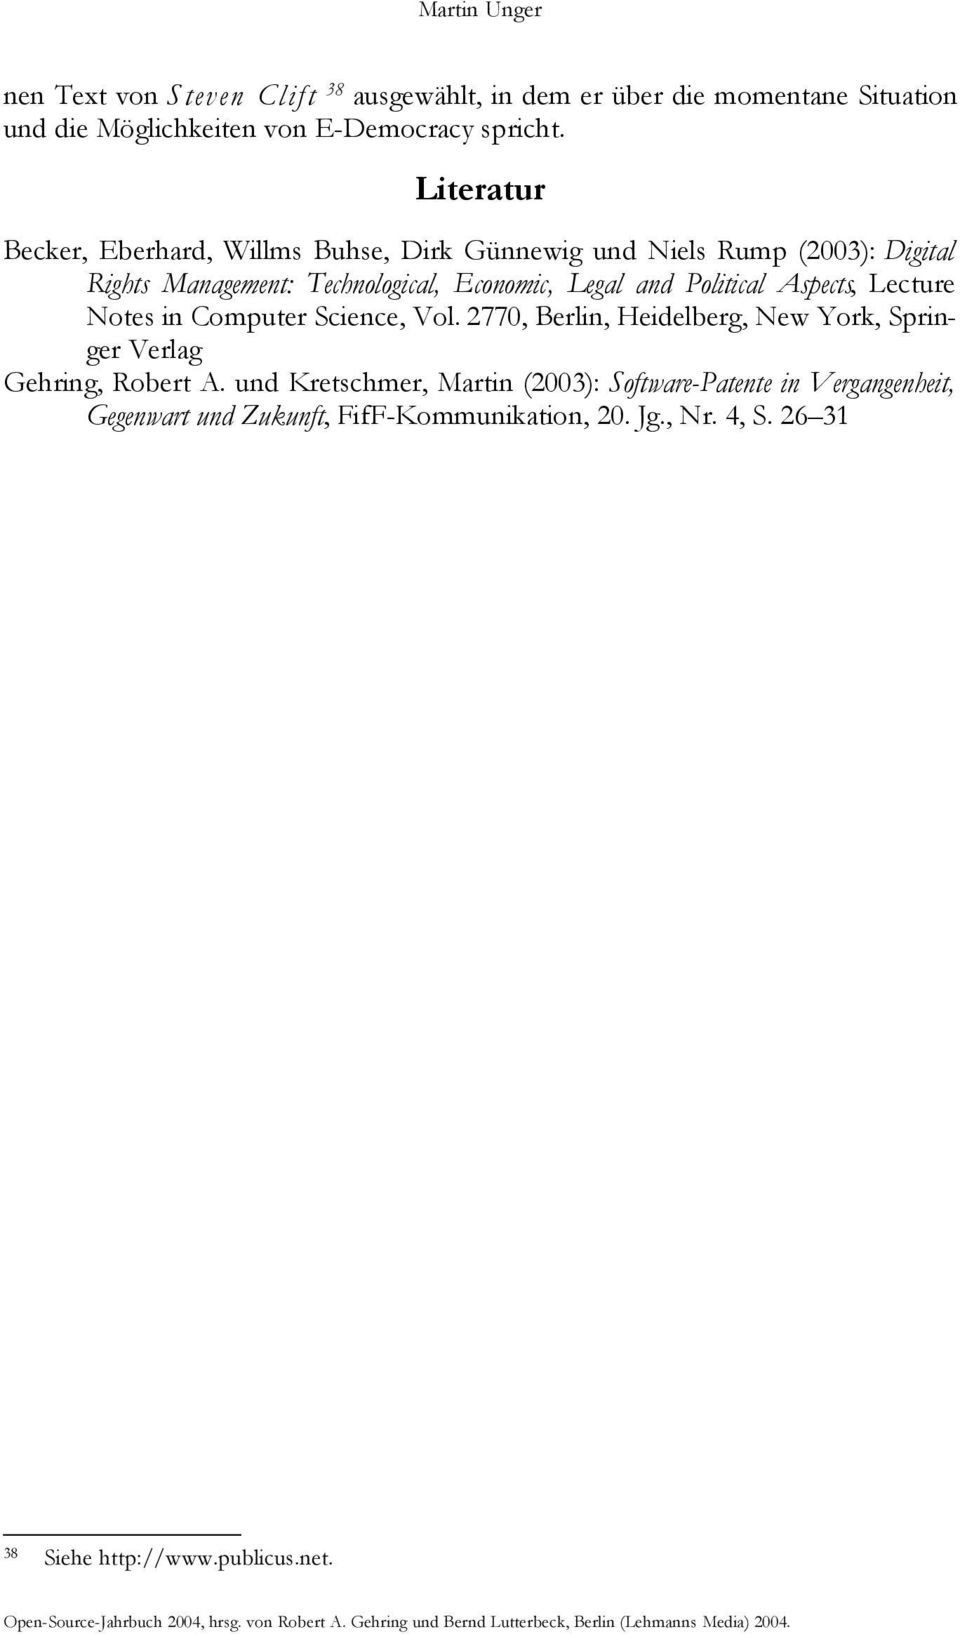 Political Aspects, Lecture Notes in Computer Science, Vol. 2770, Berlin, Heidelberg, New York, Springer Verlag Gehring, Robert A.